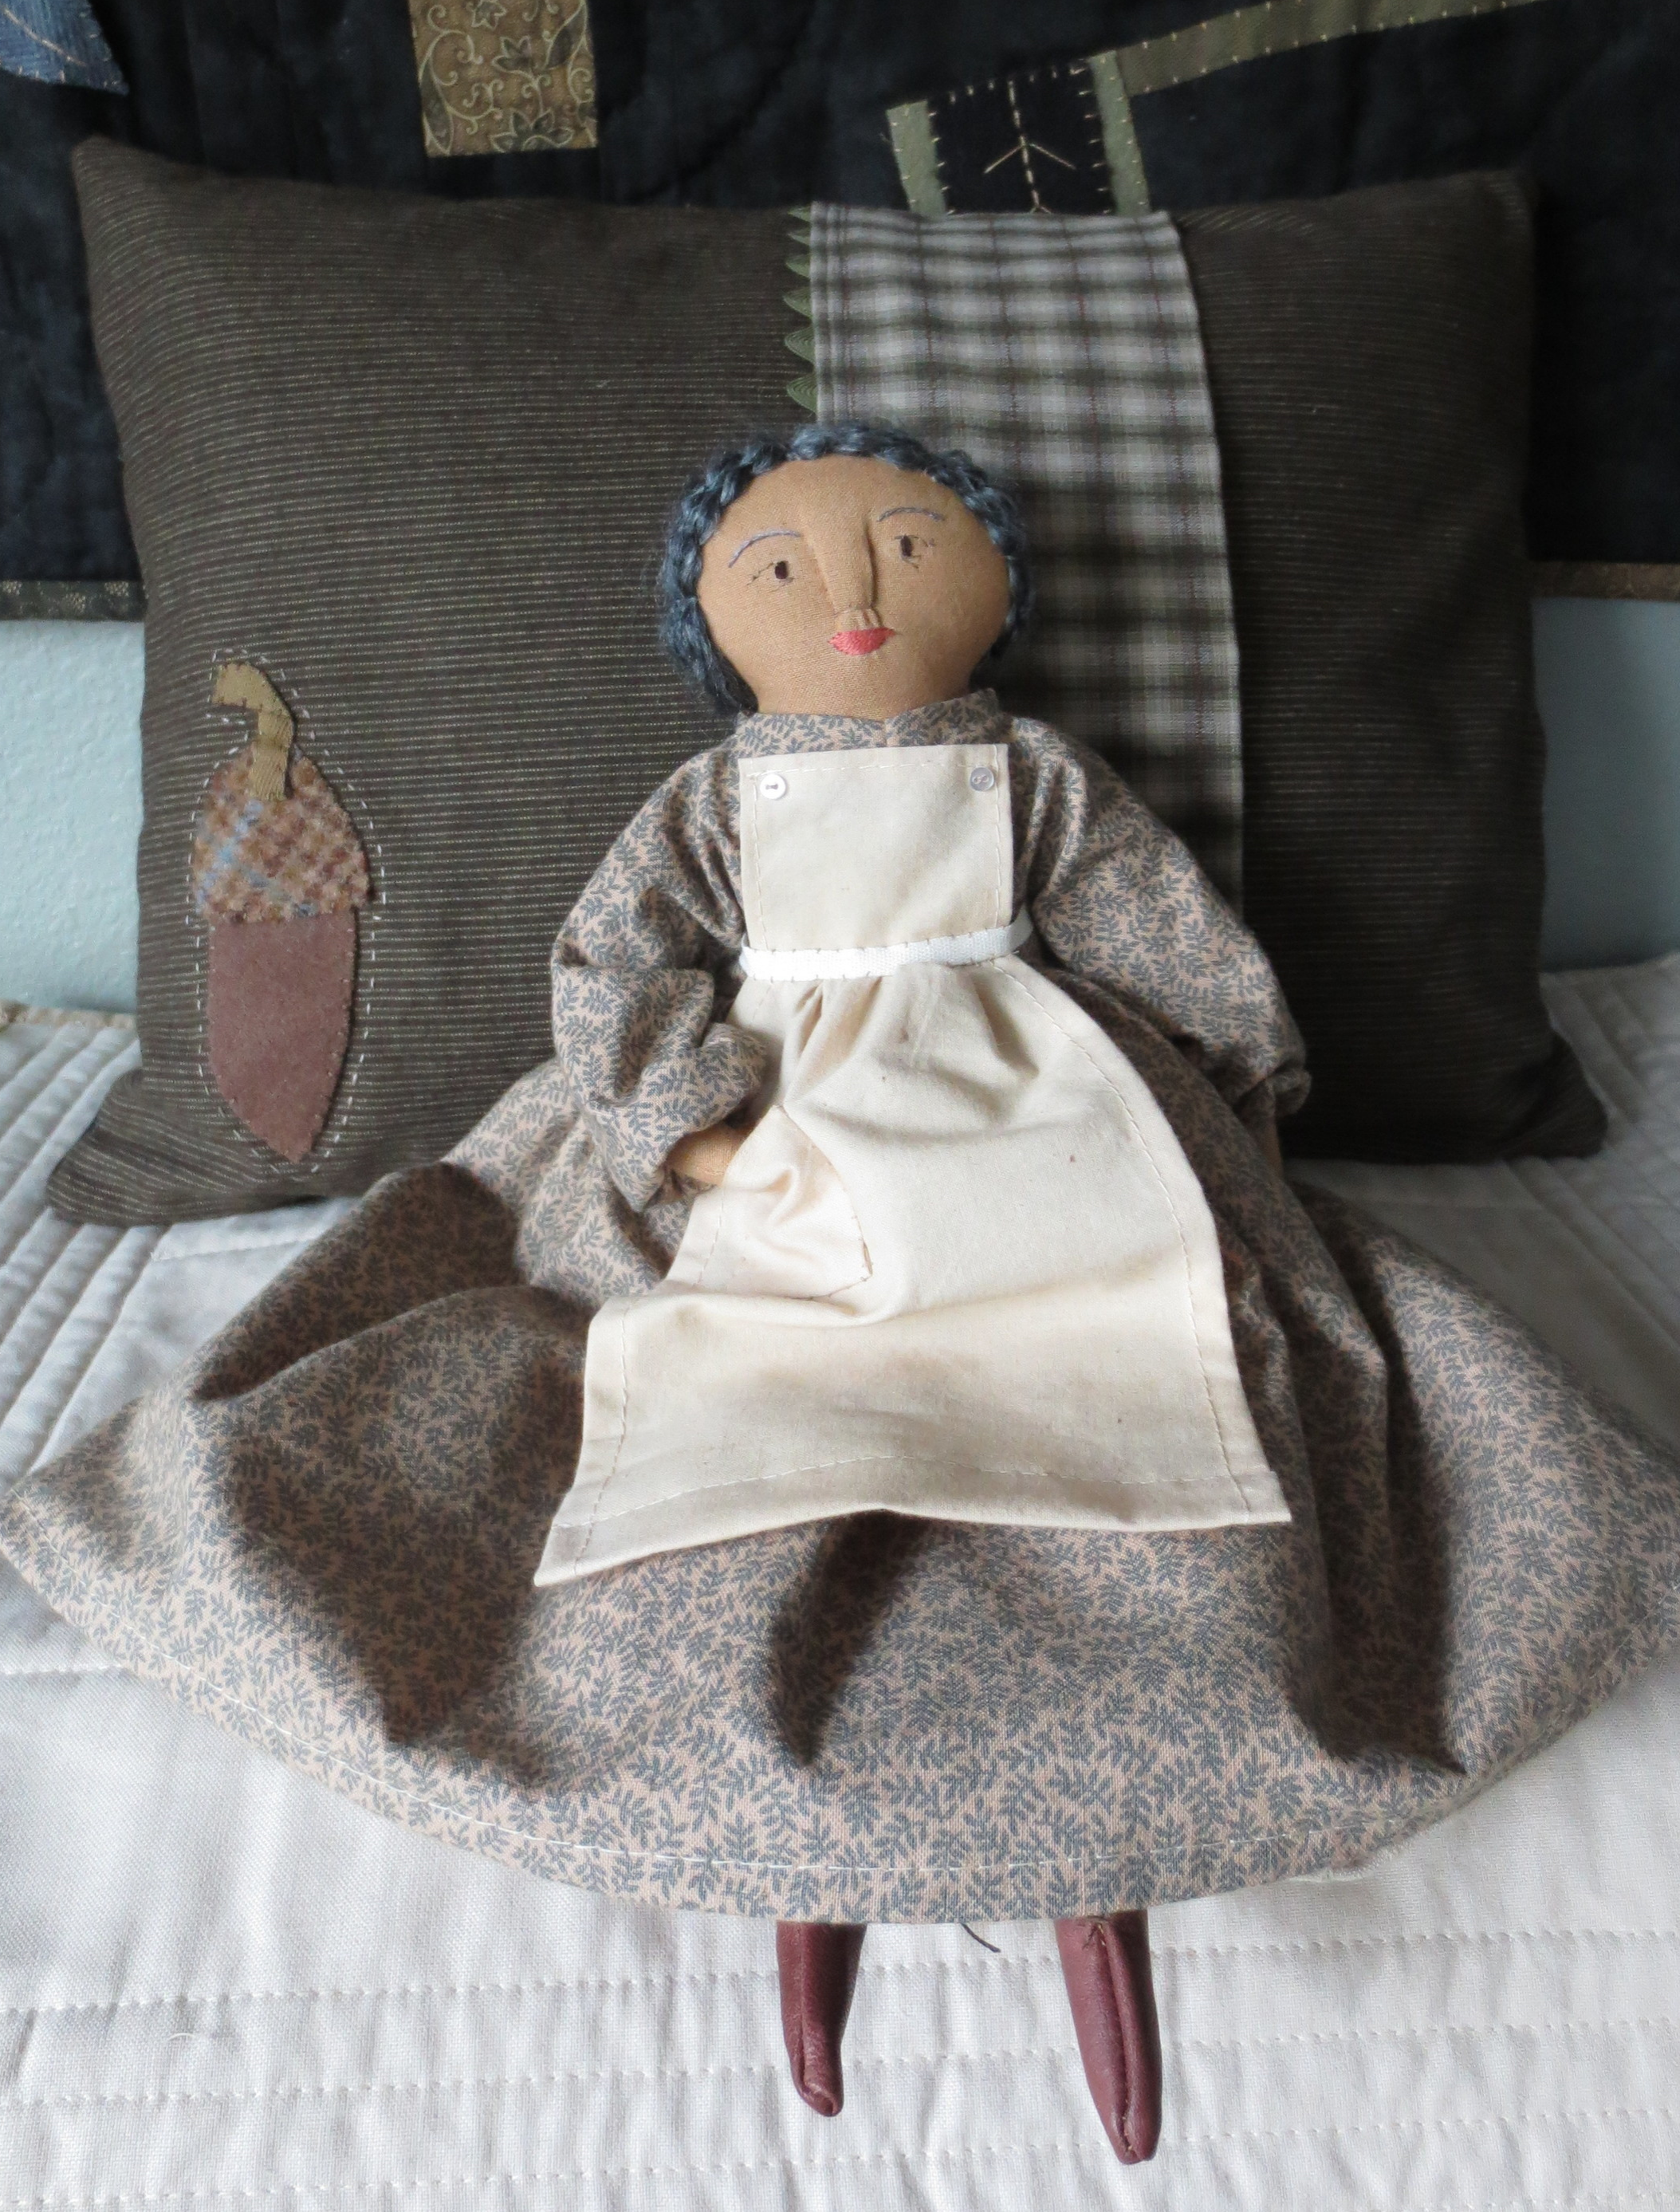 A doll for Lola